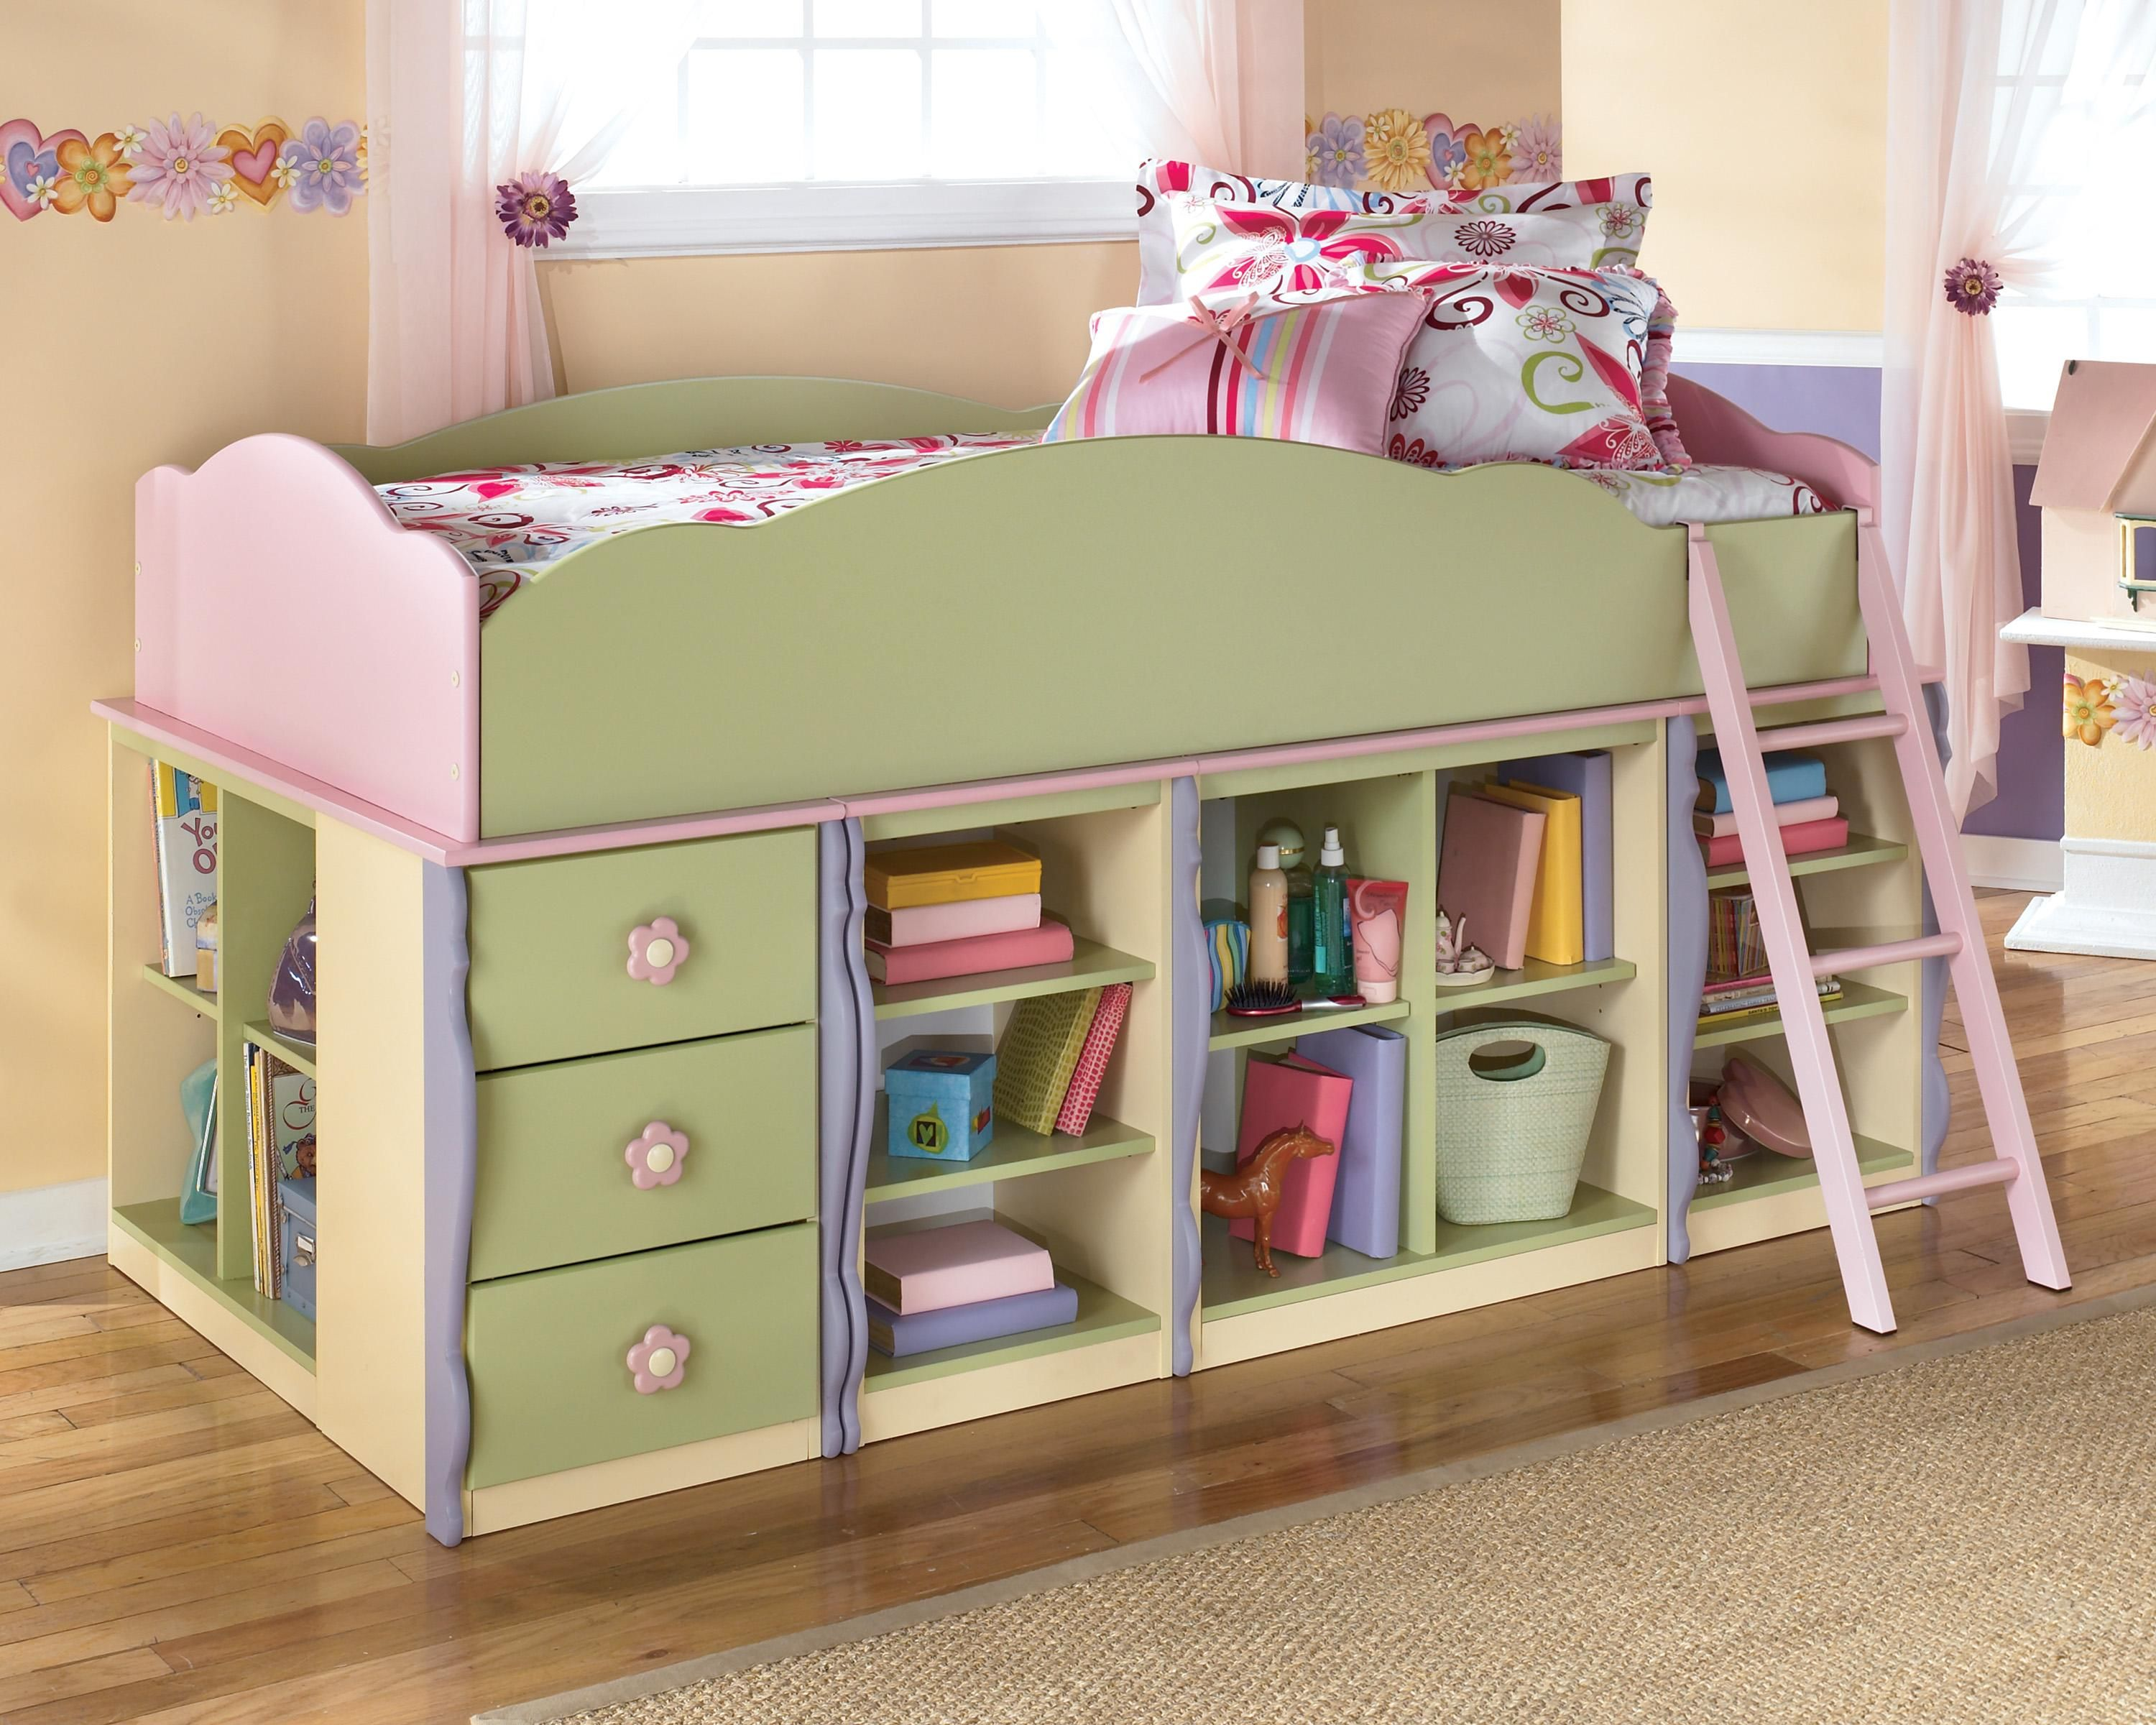 3 bedroom loft  Doll House Modular Loft Bed with Underbed Storage by Signature